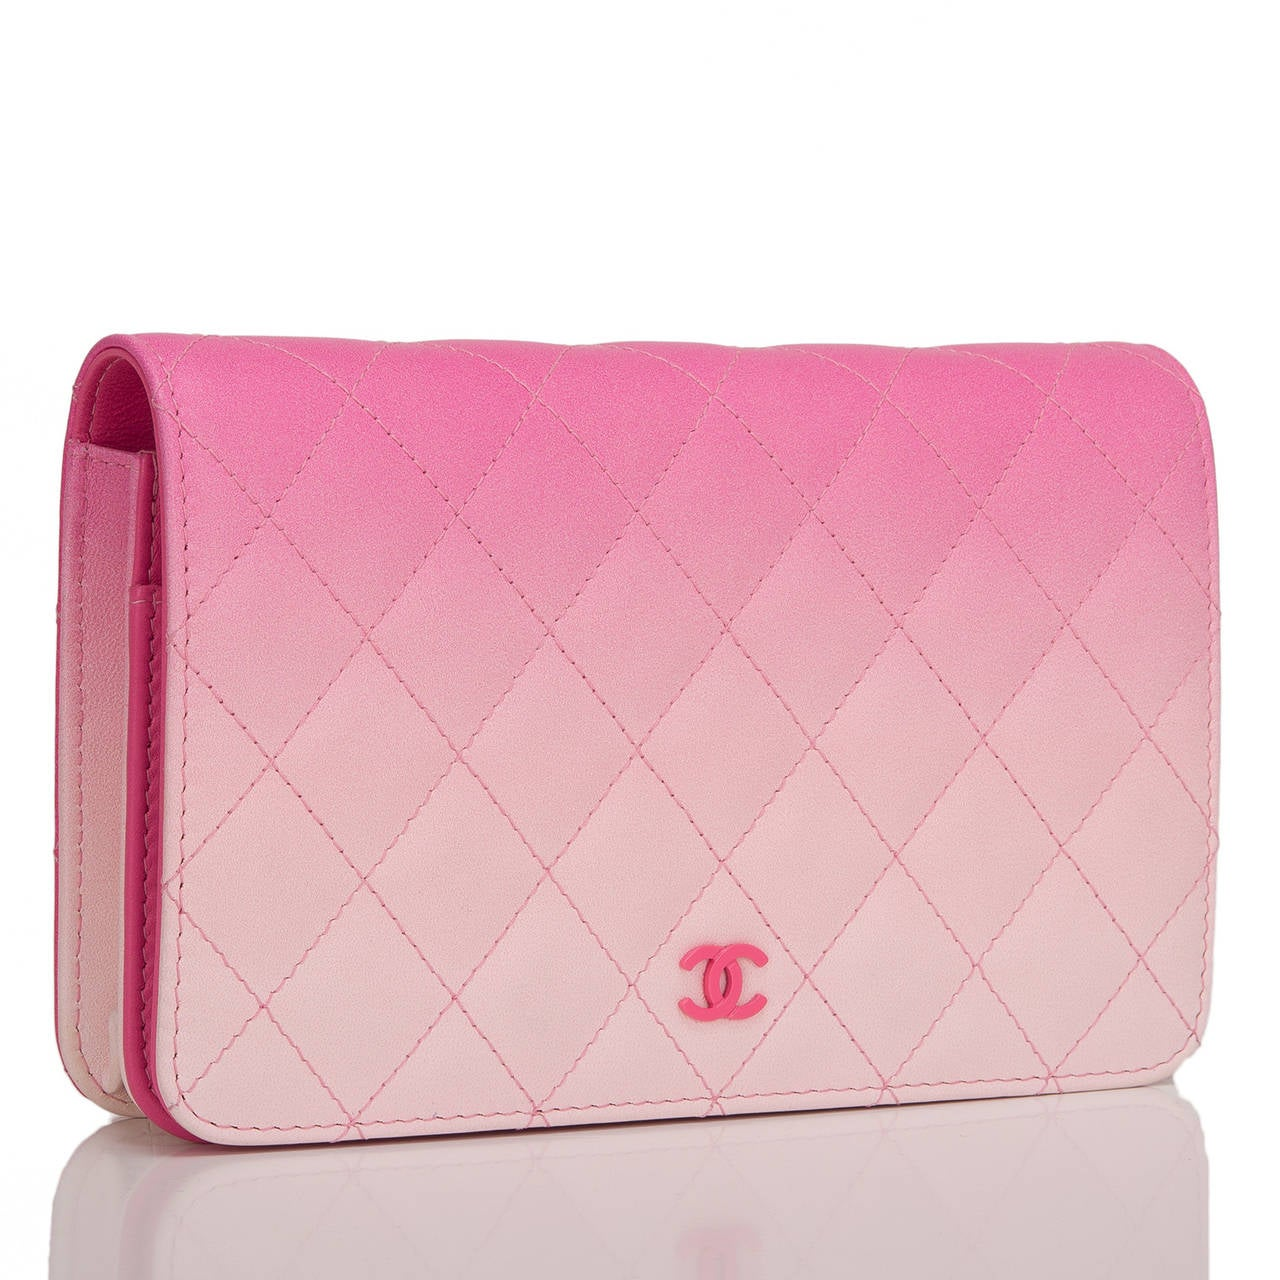 This pink Chanel Wallet On Chain (WOC) style is exceptional in that it features pink ombre lambskin and pink CC detail. The bag is made of signature Chanel quilting, silver tone hardware front flap with CC charm and hidden snap closure, expandable